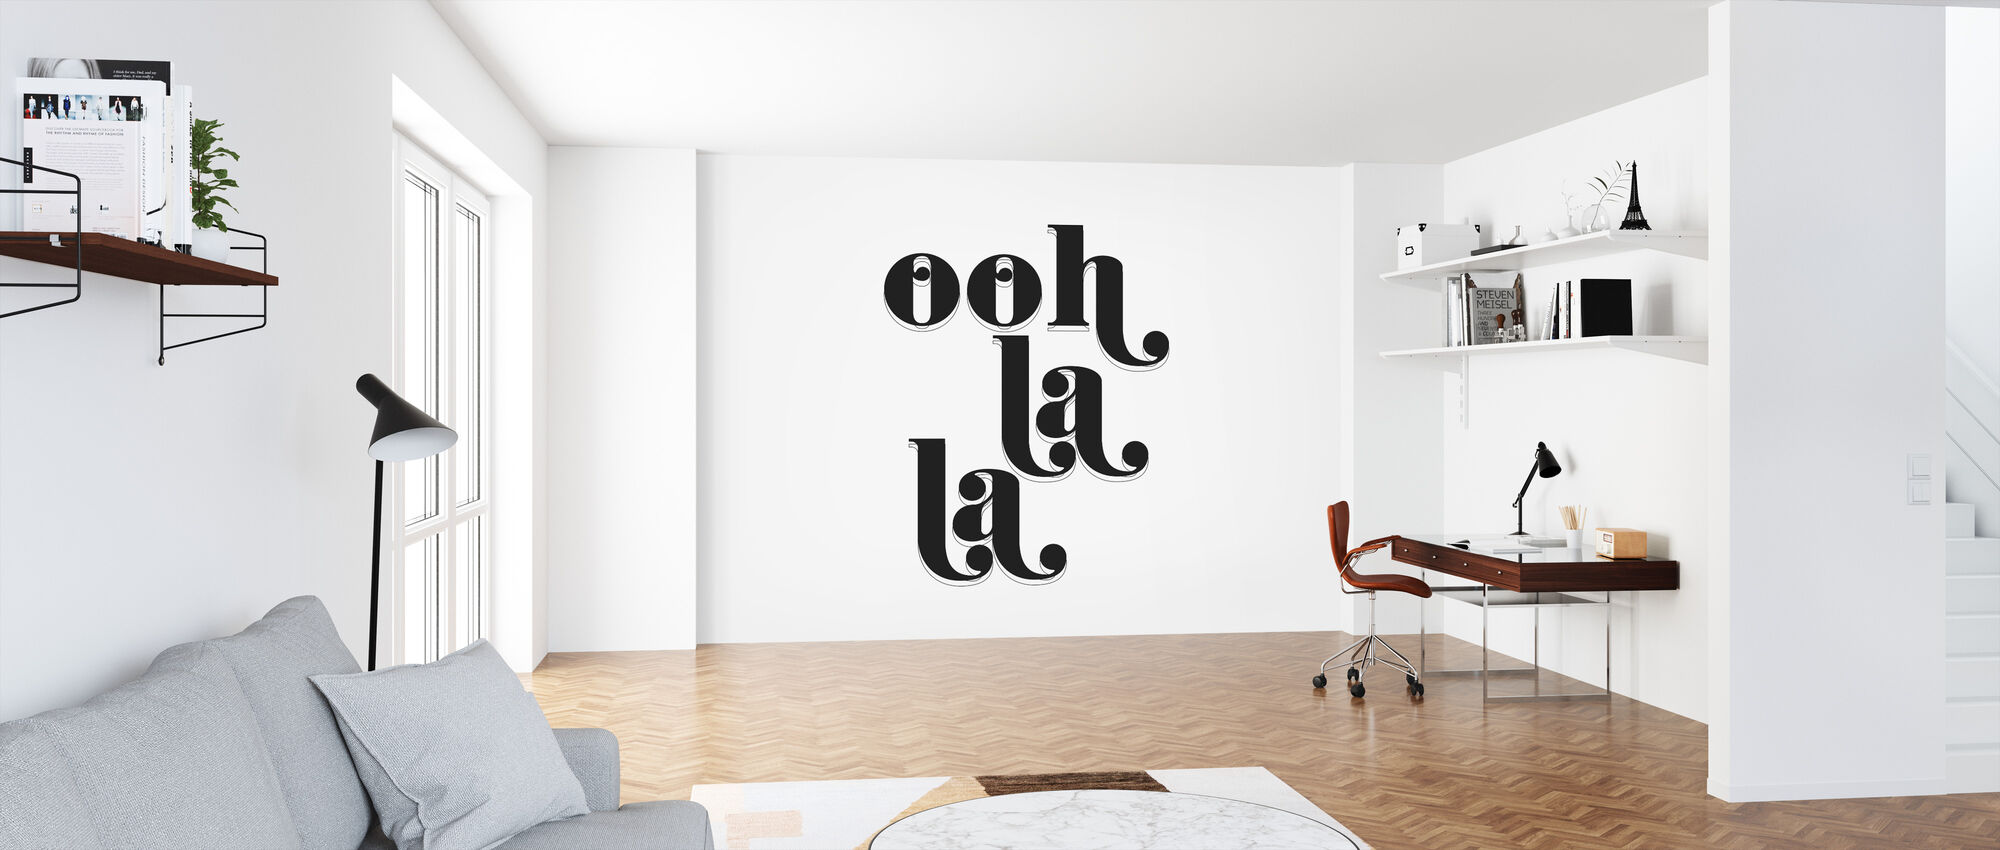 Ooh La La - Wallpaper - Office